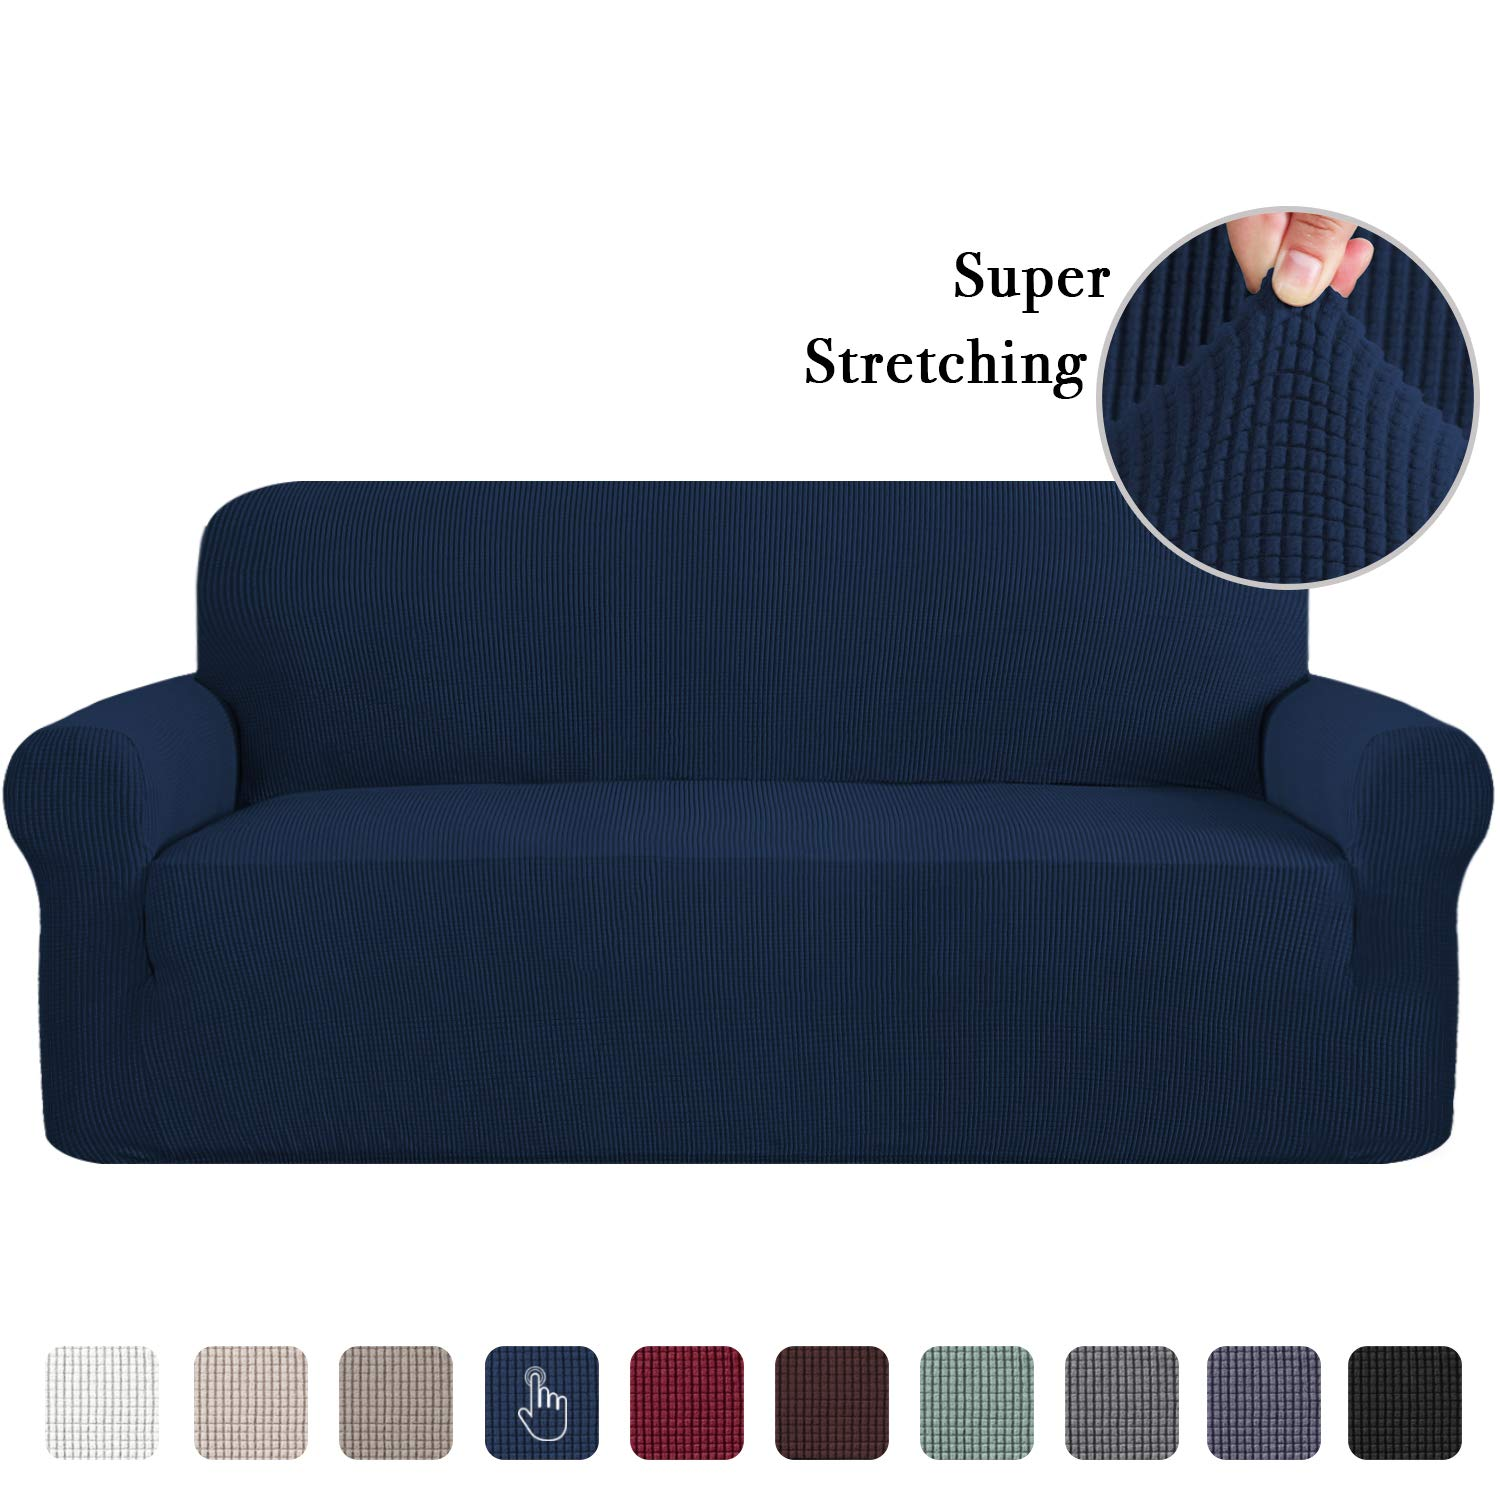 Couch Sofa Slipcover Sofa Slip Cover for Leather Couch Covers for 3 Cushion Couch Lounge Cover Kids Sofa Covers Stretch Sofa Cover Set Furniture Covers for Moving Sand Flamingo P